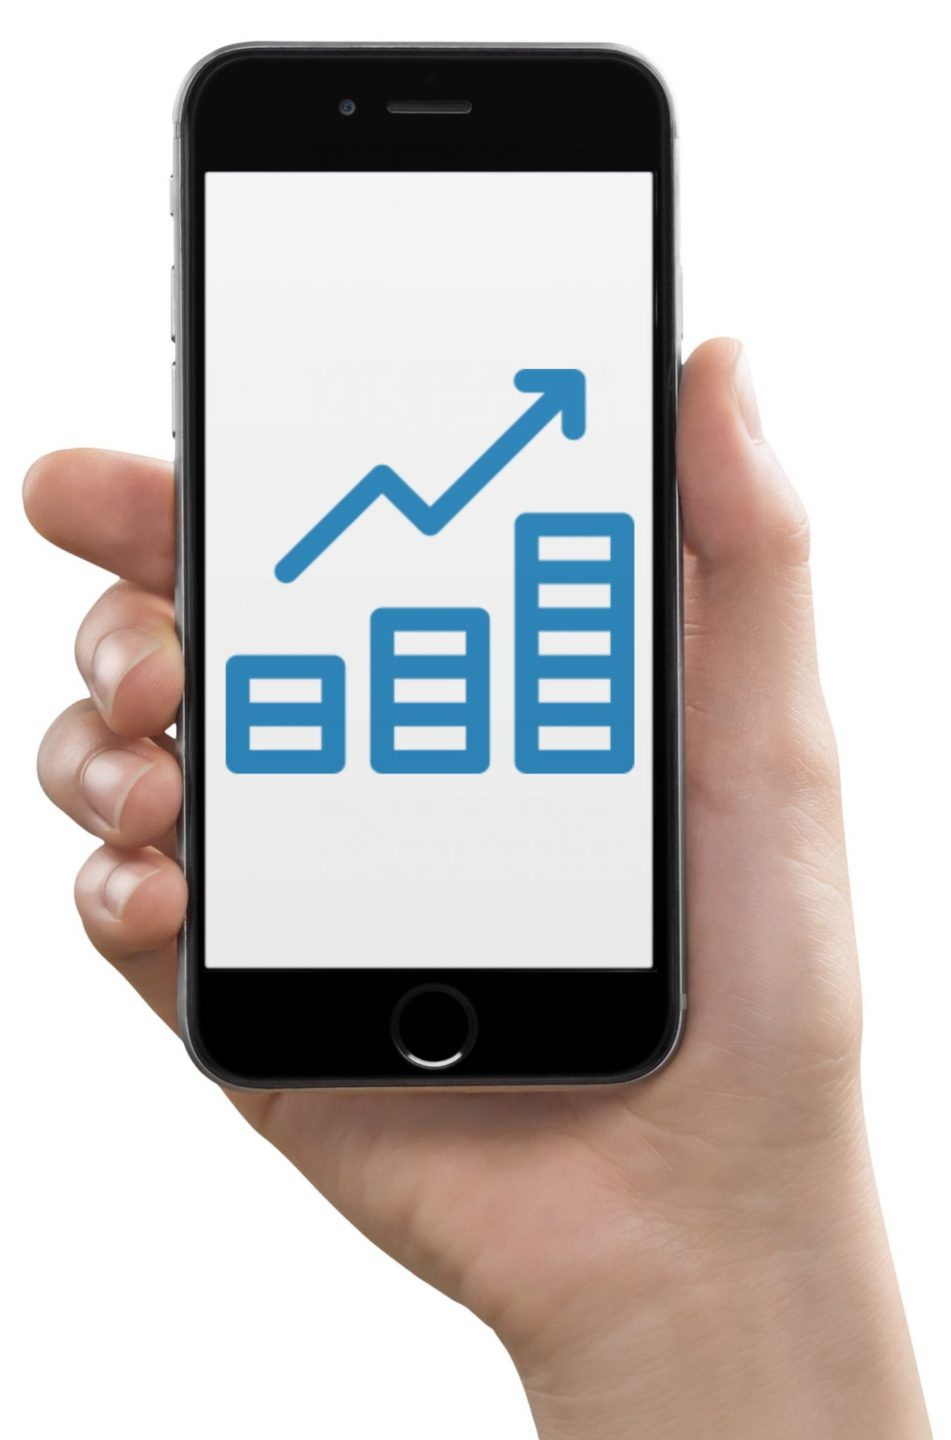 Superyacht Crew Member holding a cell phone showing his financial investments graph growing